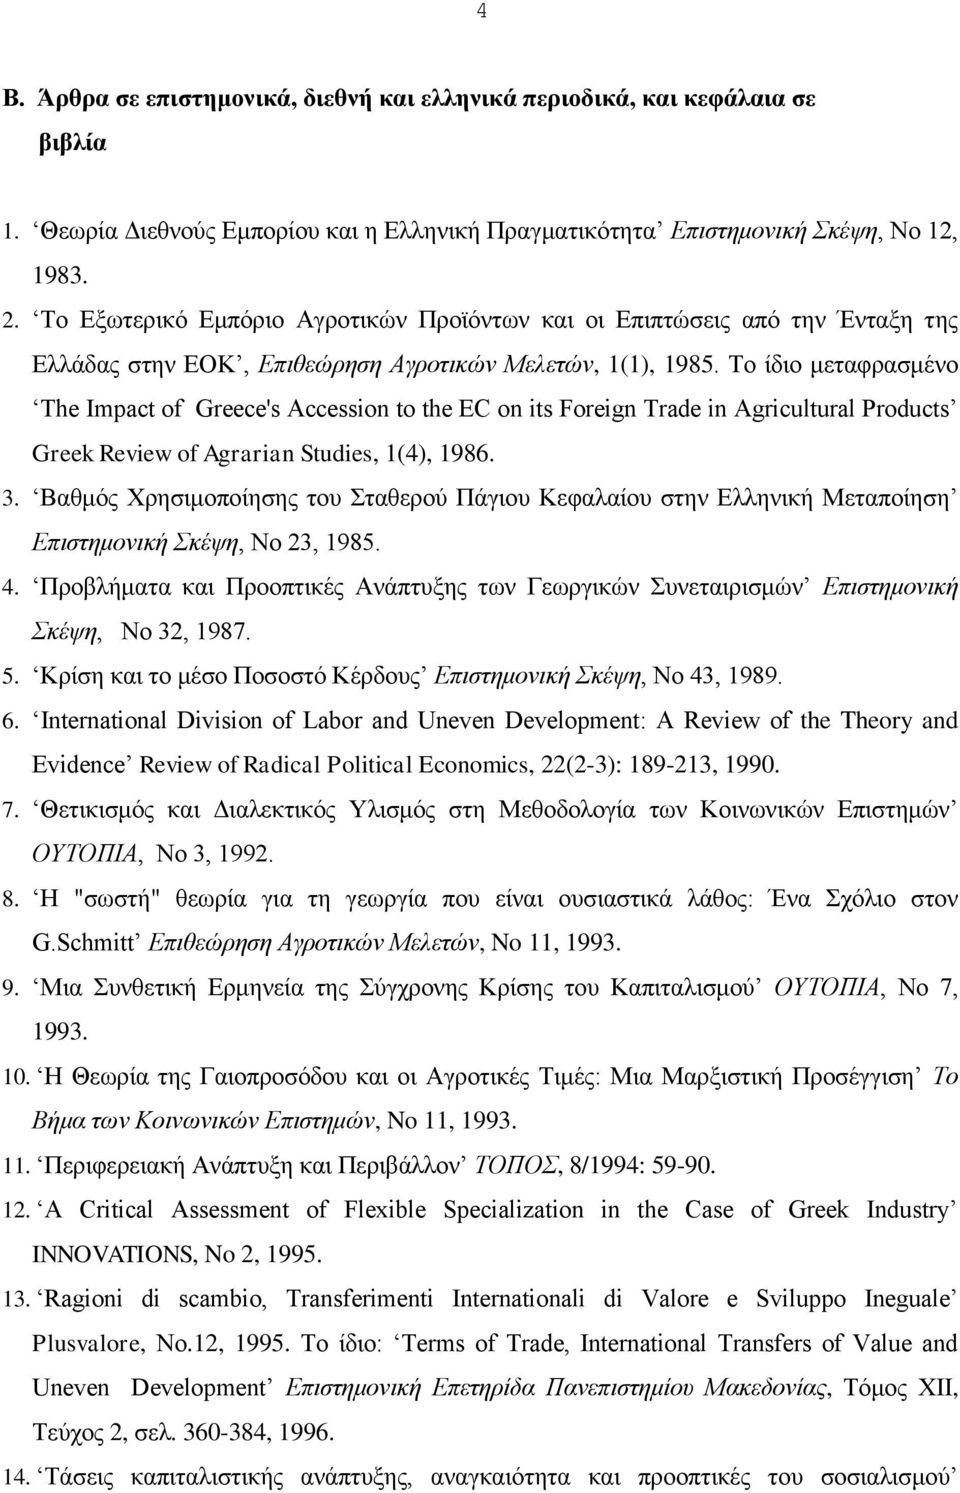 Το ίδιο μεταφρασμένο Τhe Impact of Greece's Accession to the EC on its Foreign Trade in Agricultural Products Greek Review of Agrarian Studies, 1(4), 1986. 3.